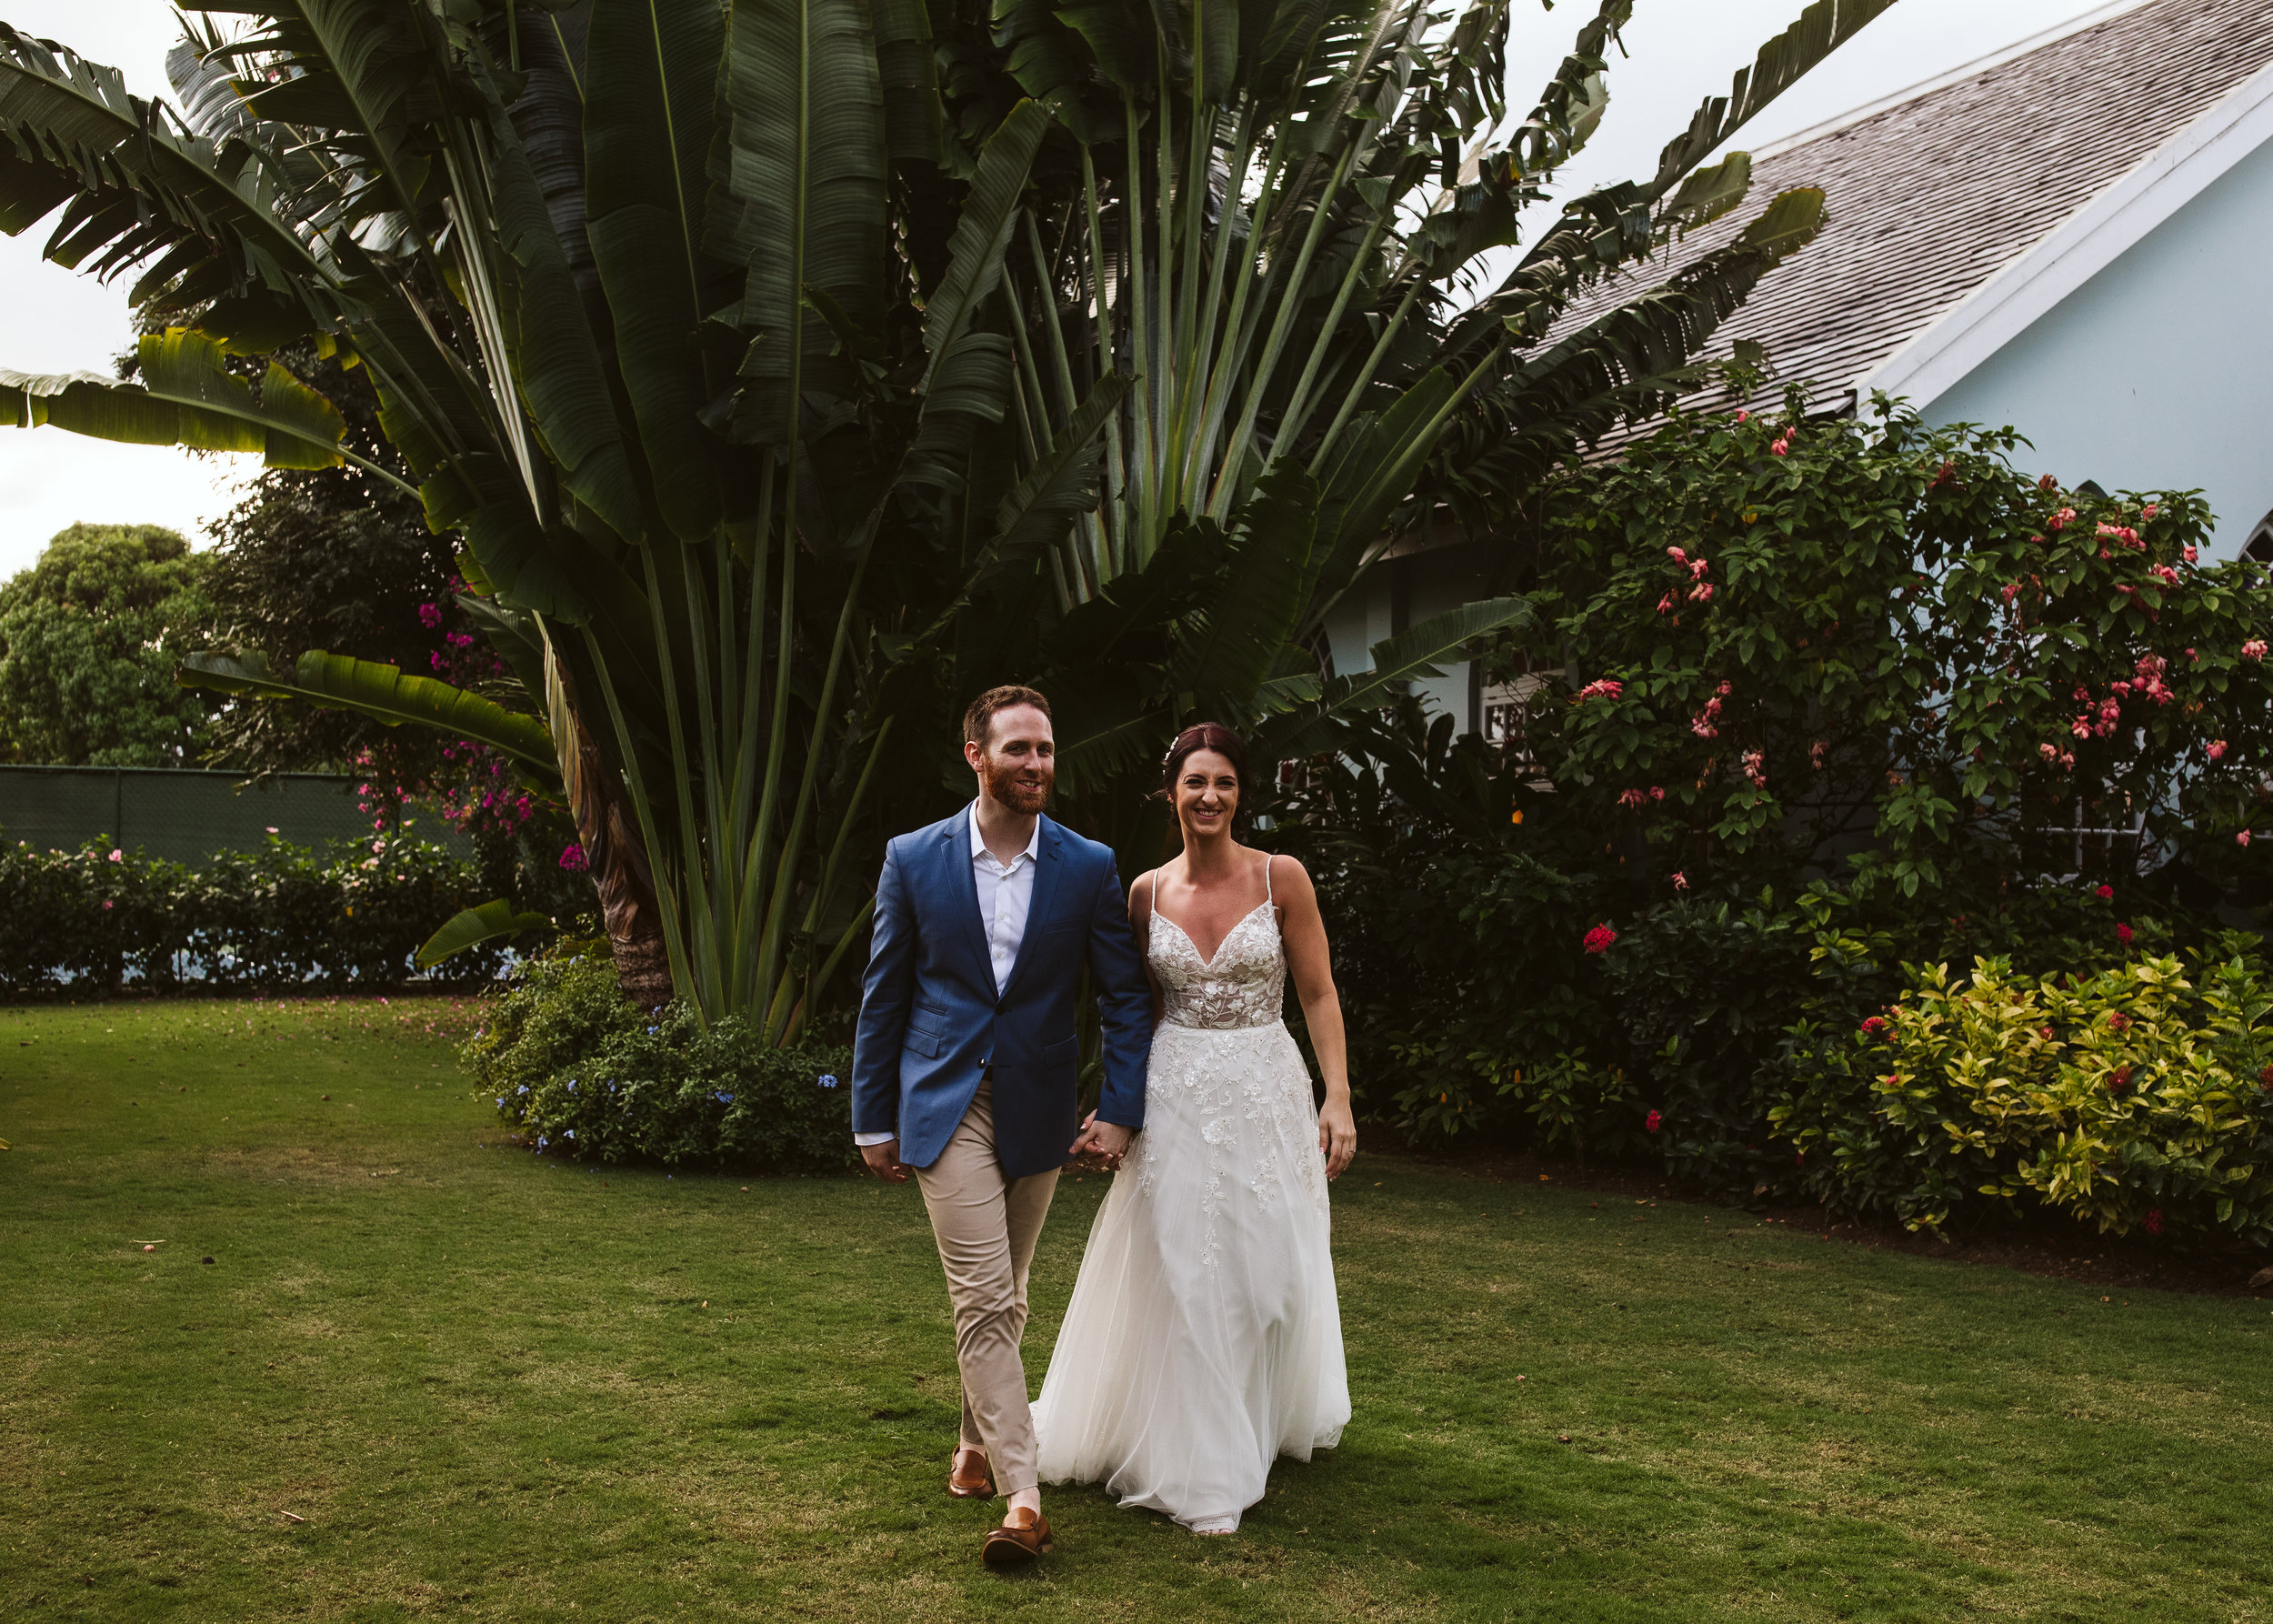 BRITTNEY & TYLER - The Tropical Getaway Wedding // Montego Bay, Jamaica